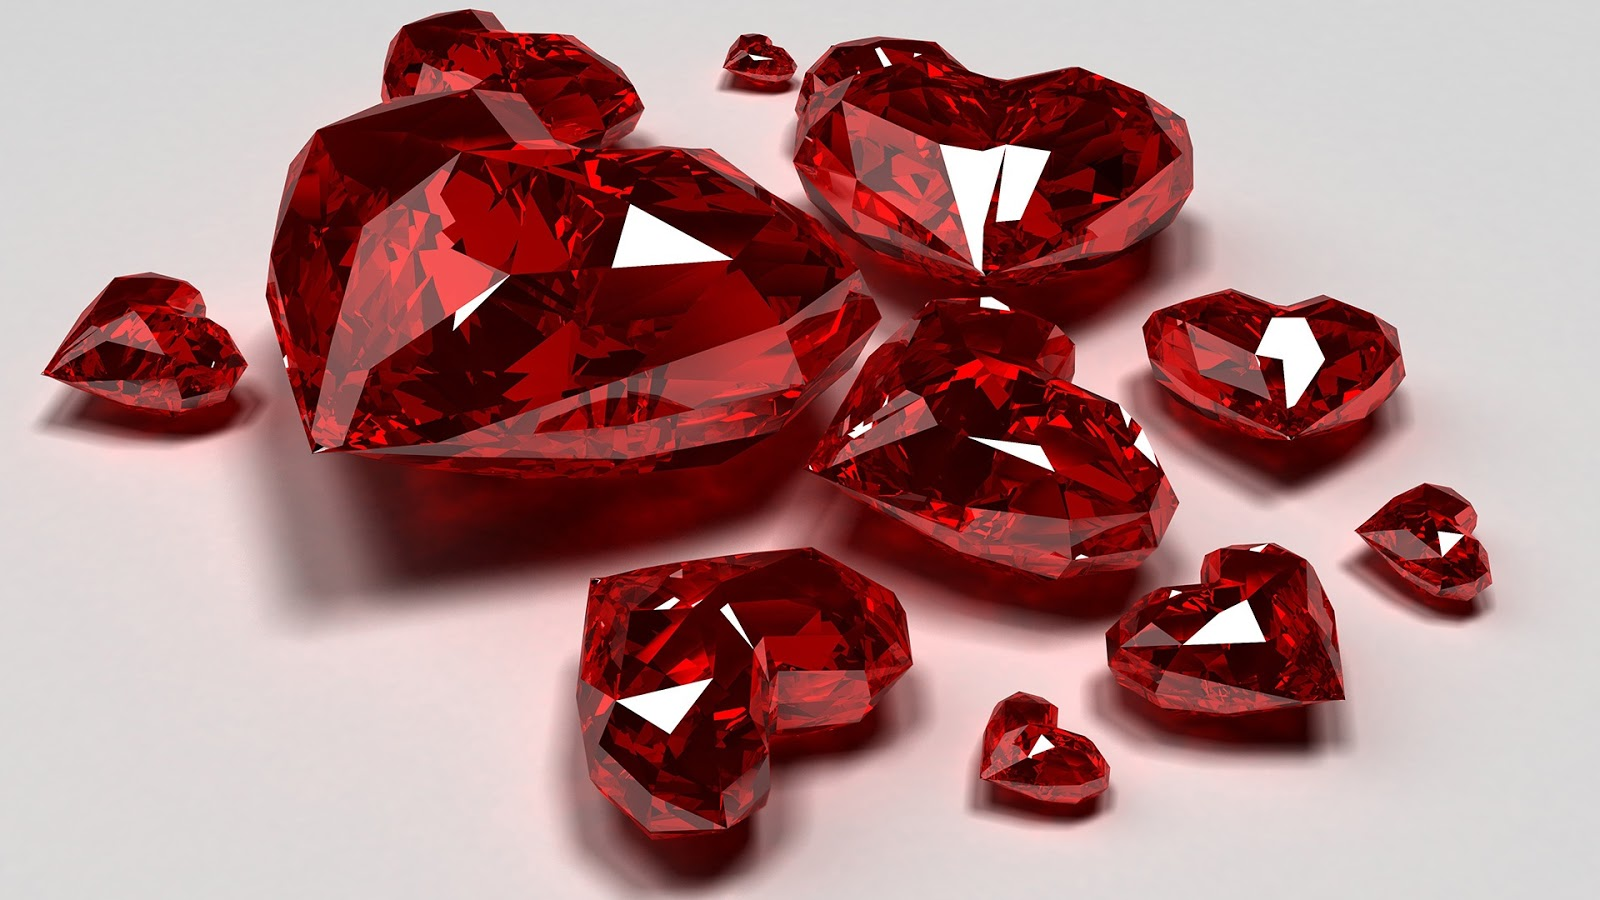 jewelry-of-ruby-close-up_1920x1080